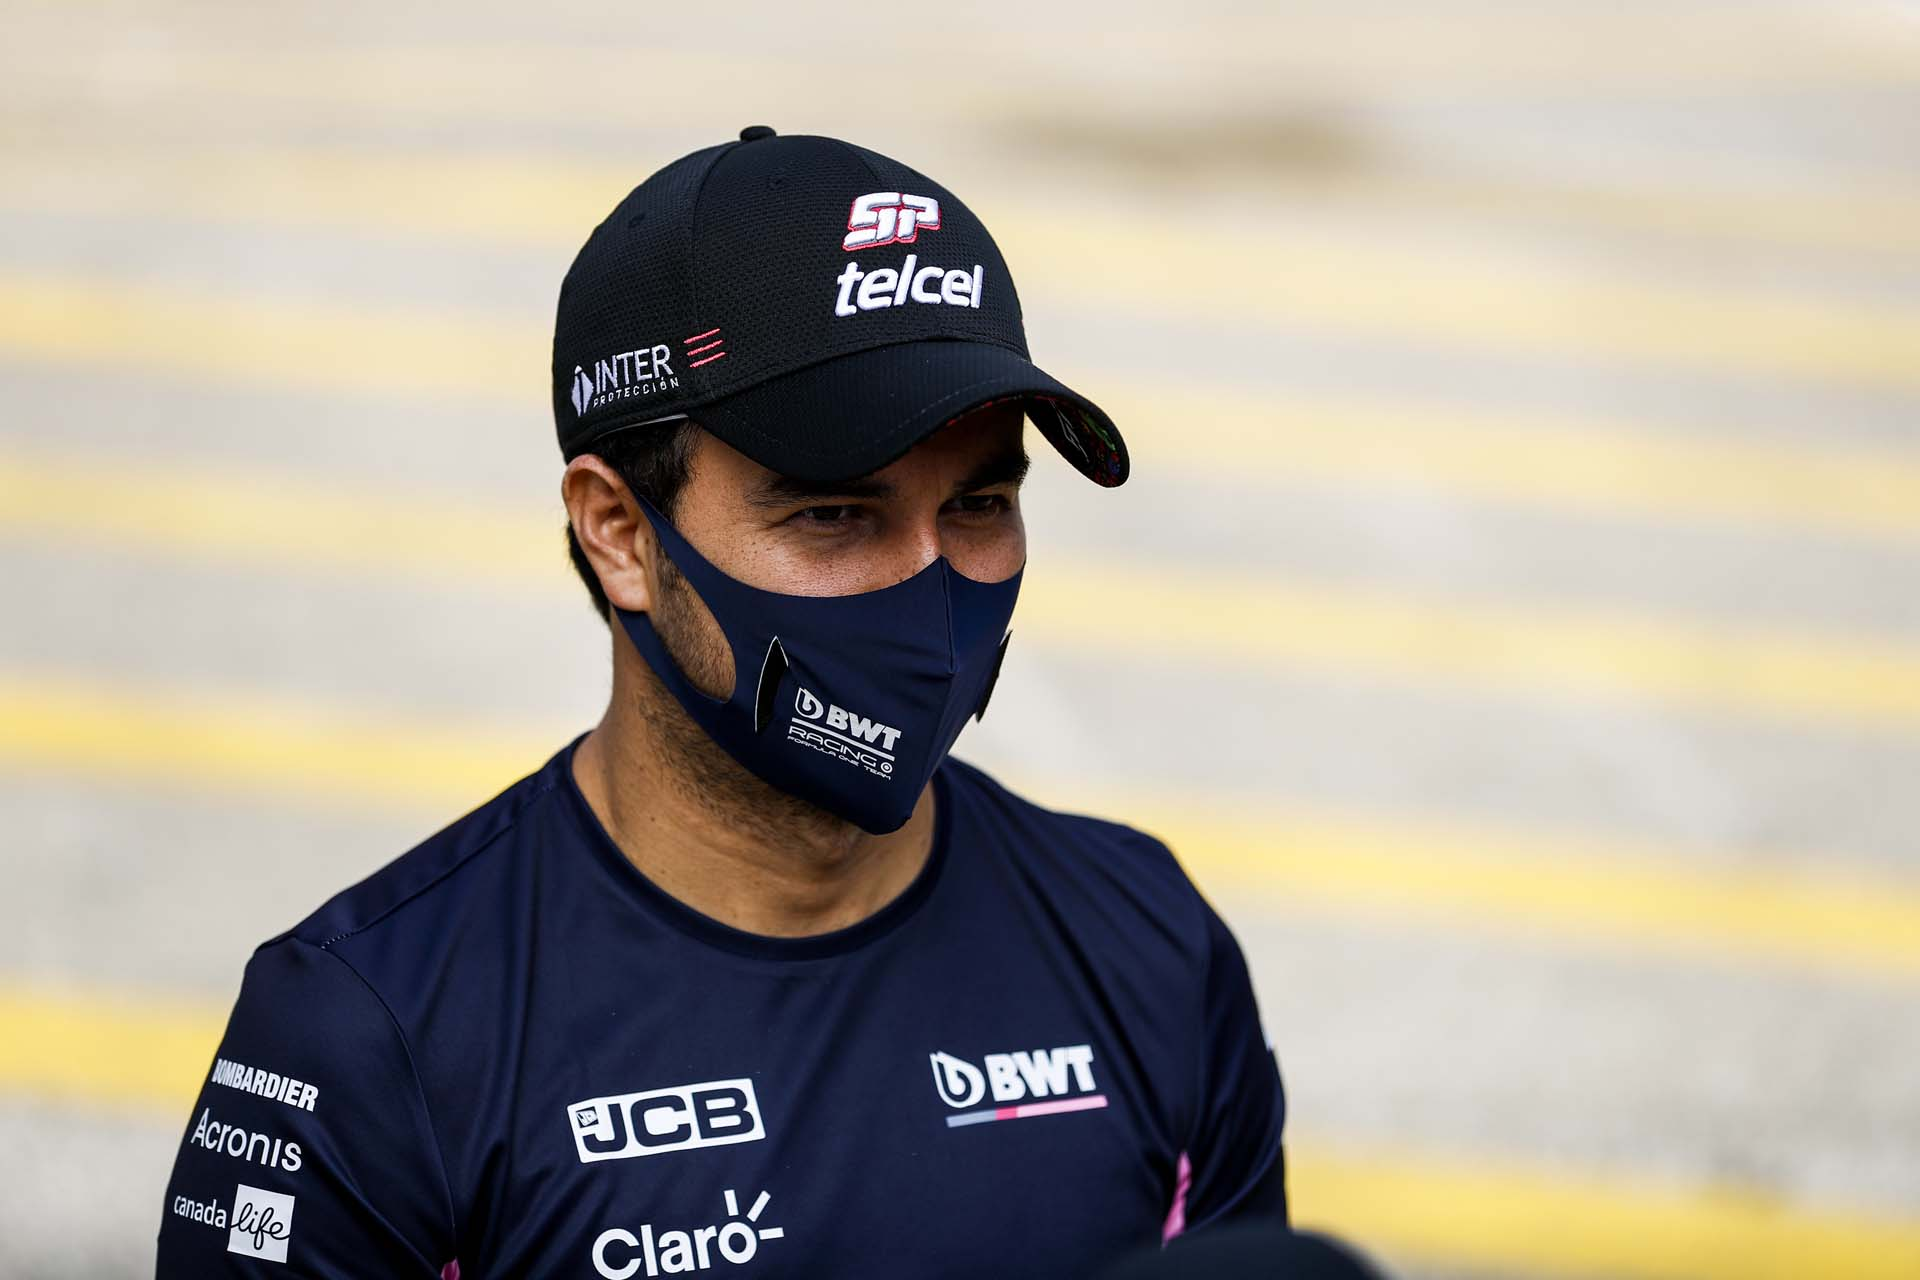 Sergio Perez, Racing Point, is interviewed